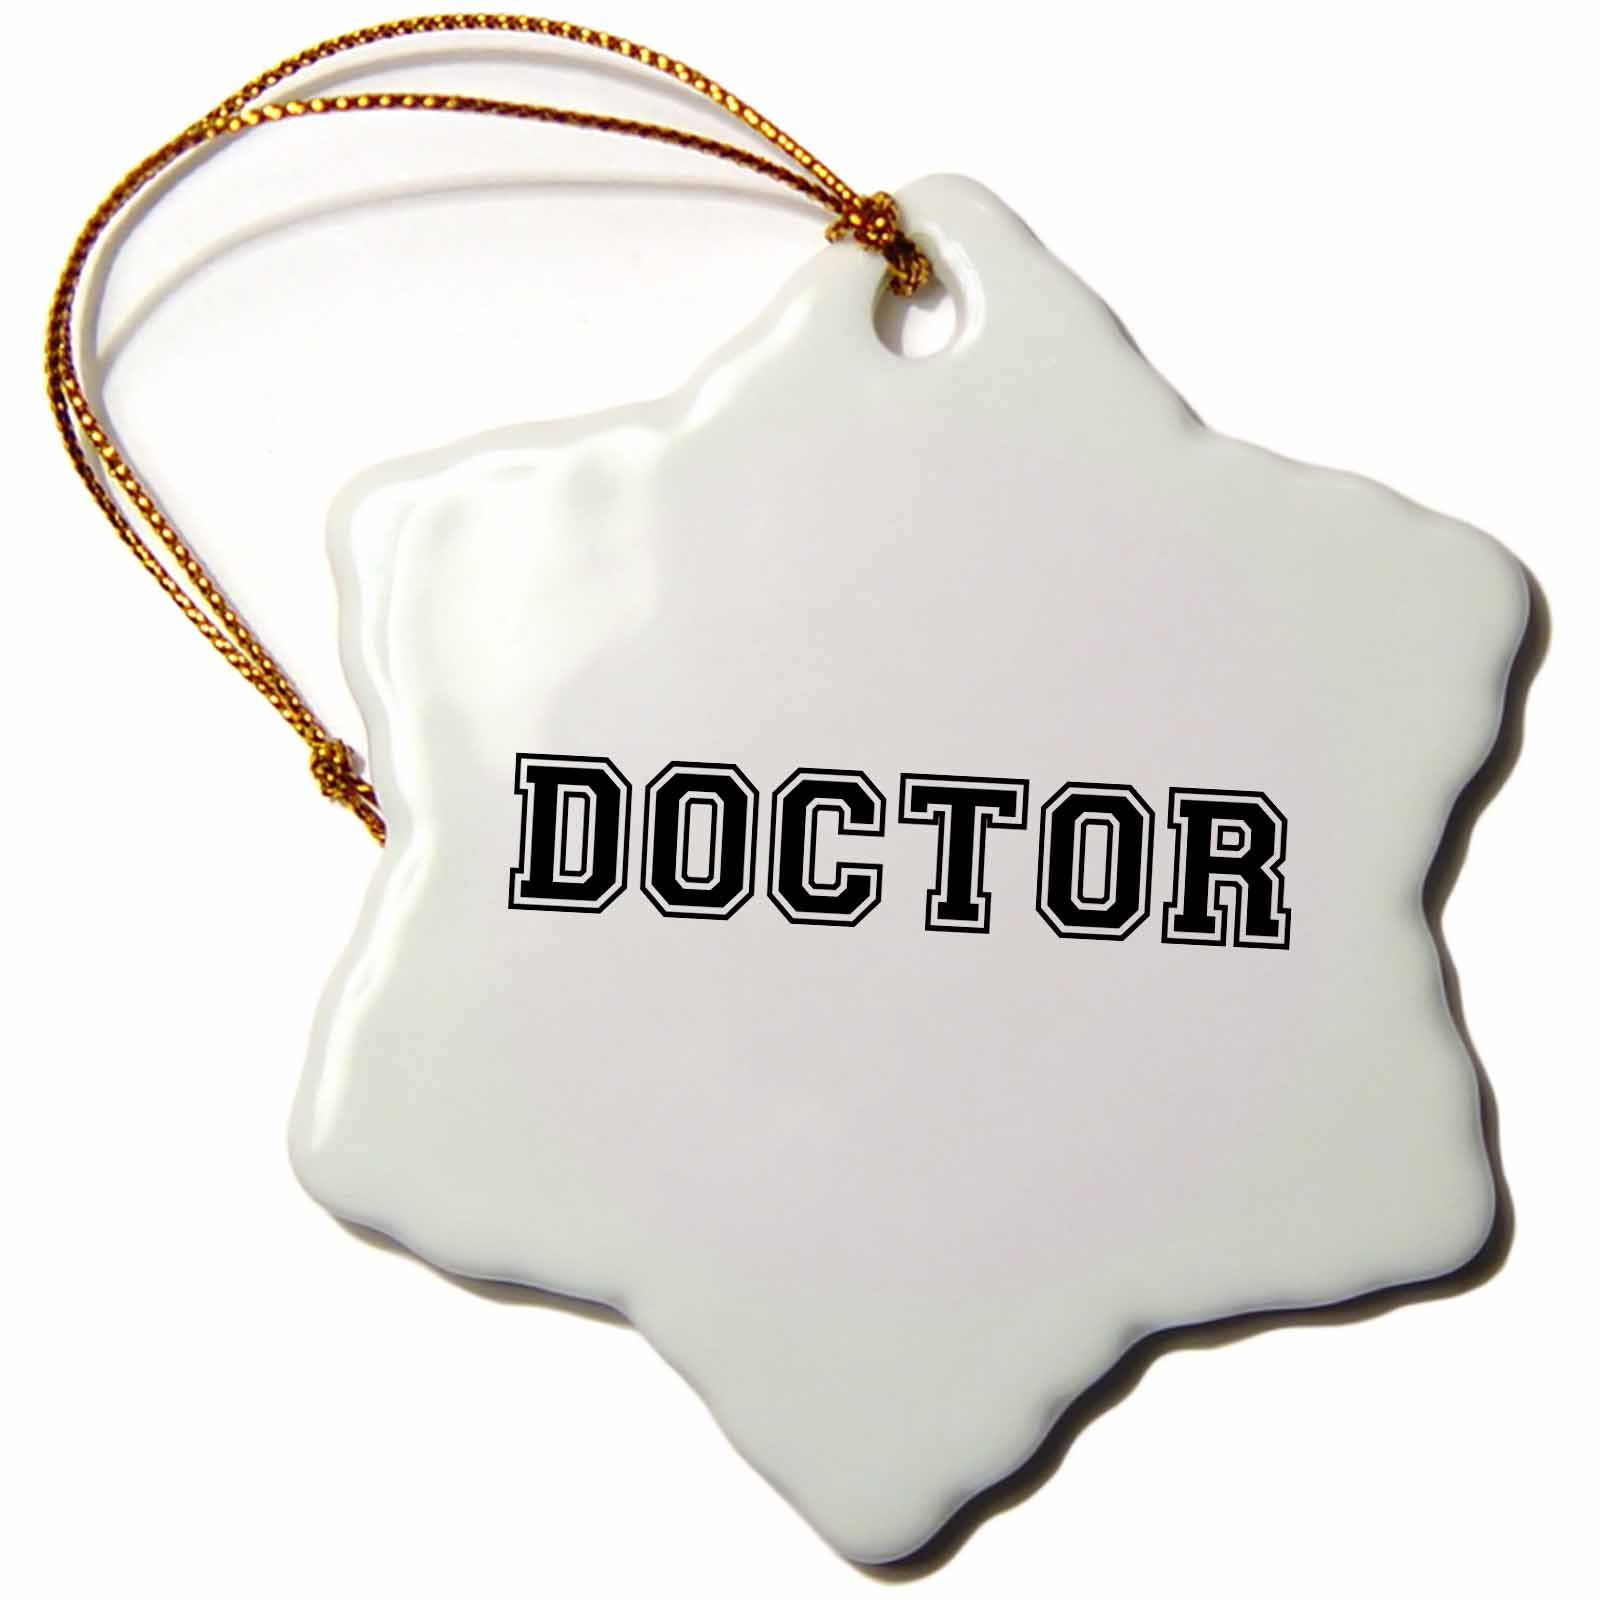 3dRose orn_151221_1 Doctor in Preppy Retro Black College Font on White Proud Medical Graduate Snowflake Porcelain Ornament, 3-Inch by 3dRose (Image #1)